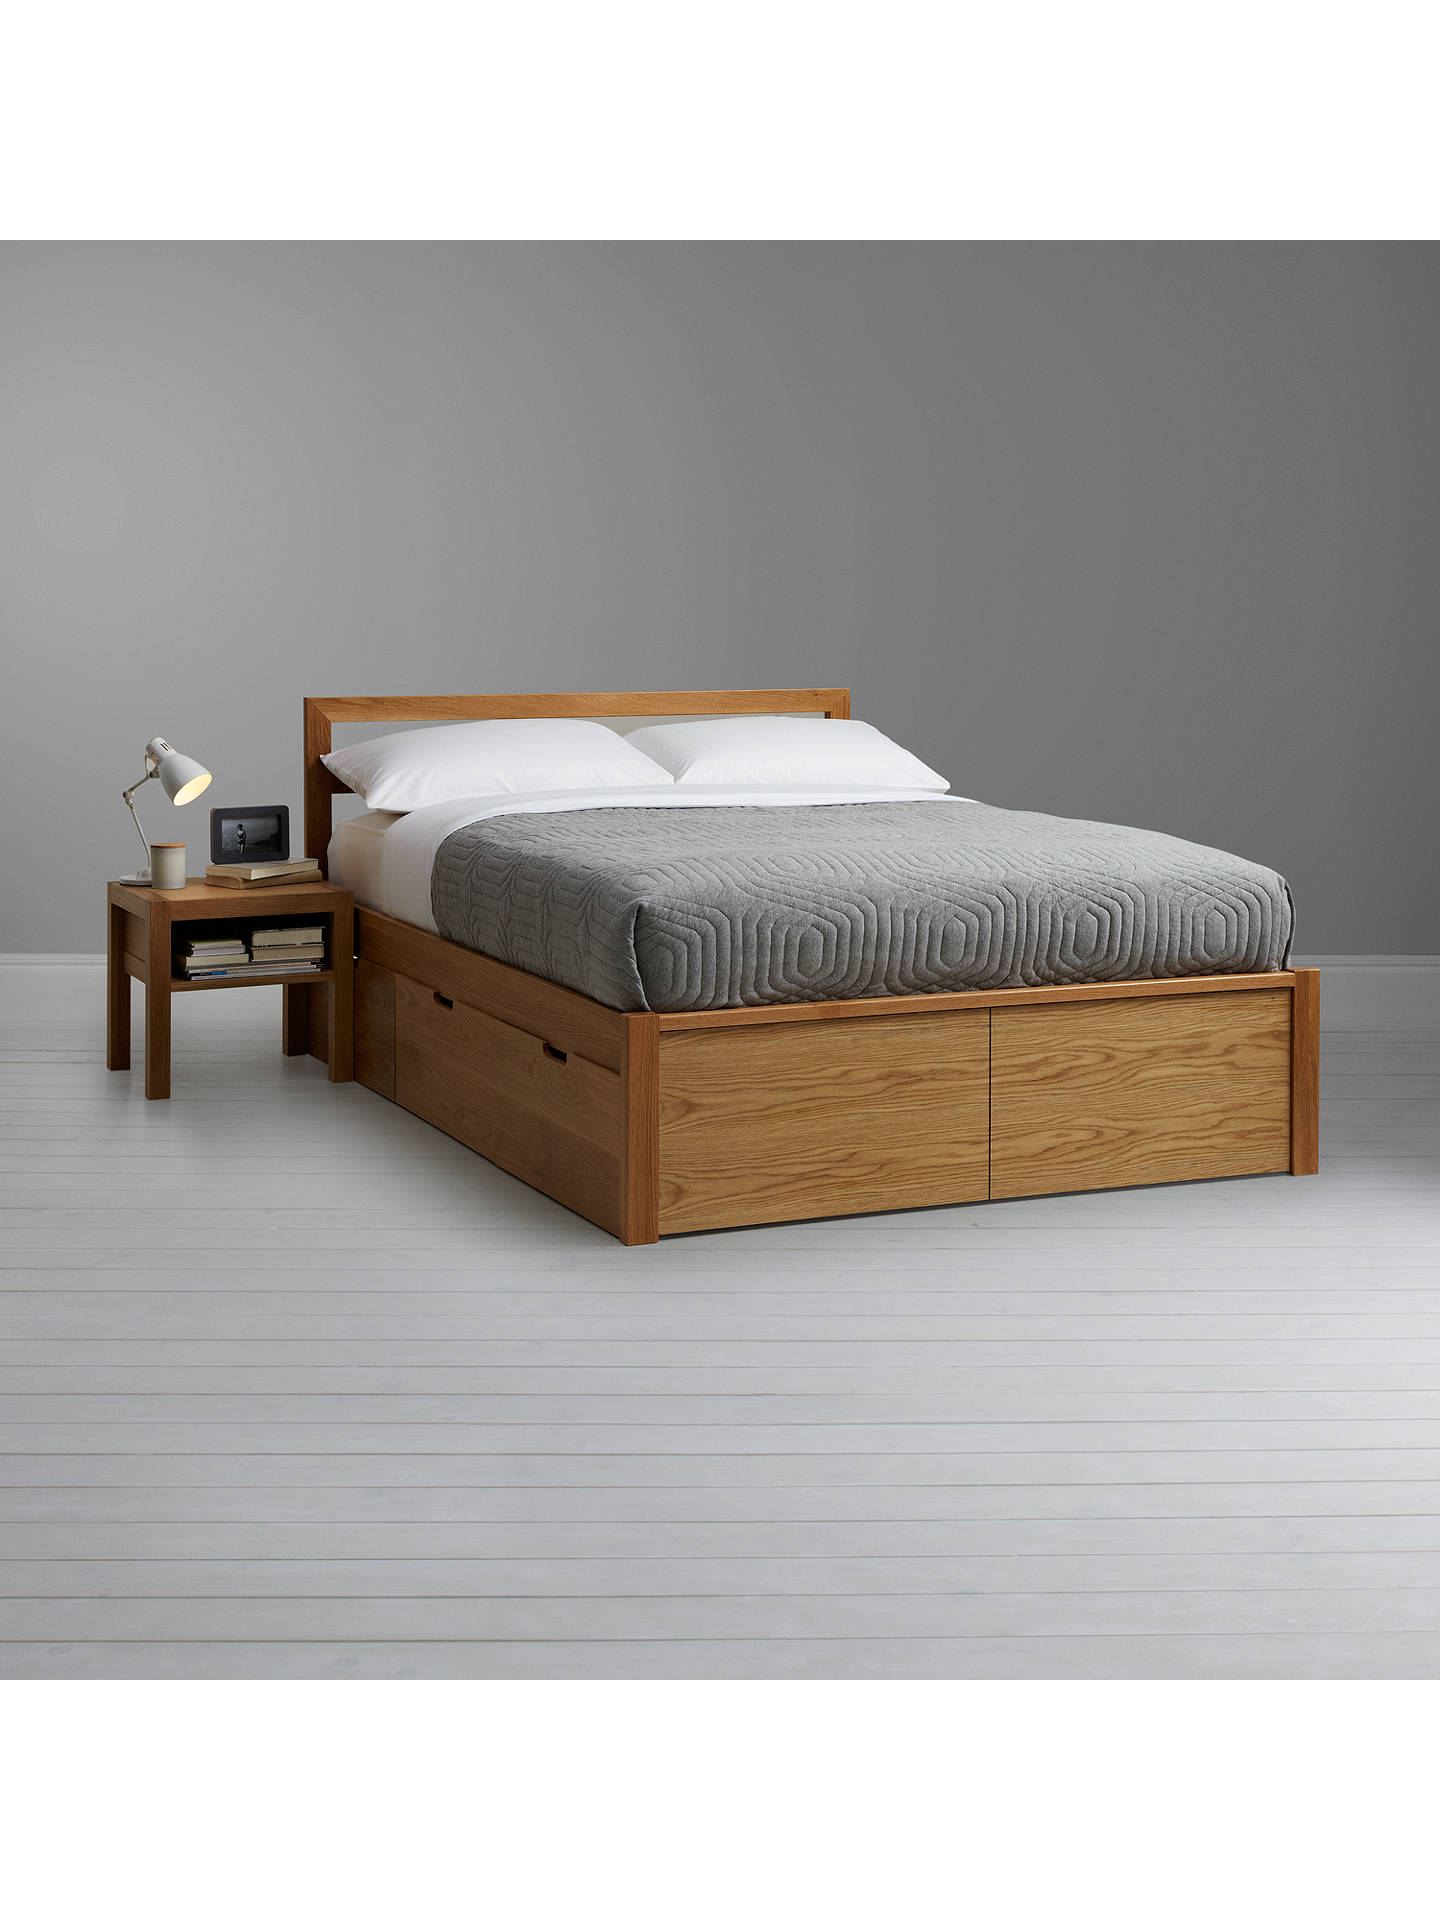 Buyhouse by john lewis ollie storage bed double oak online at johnlewis com